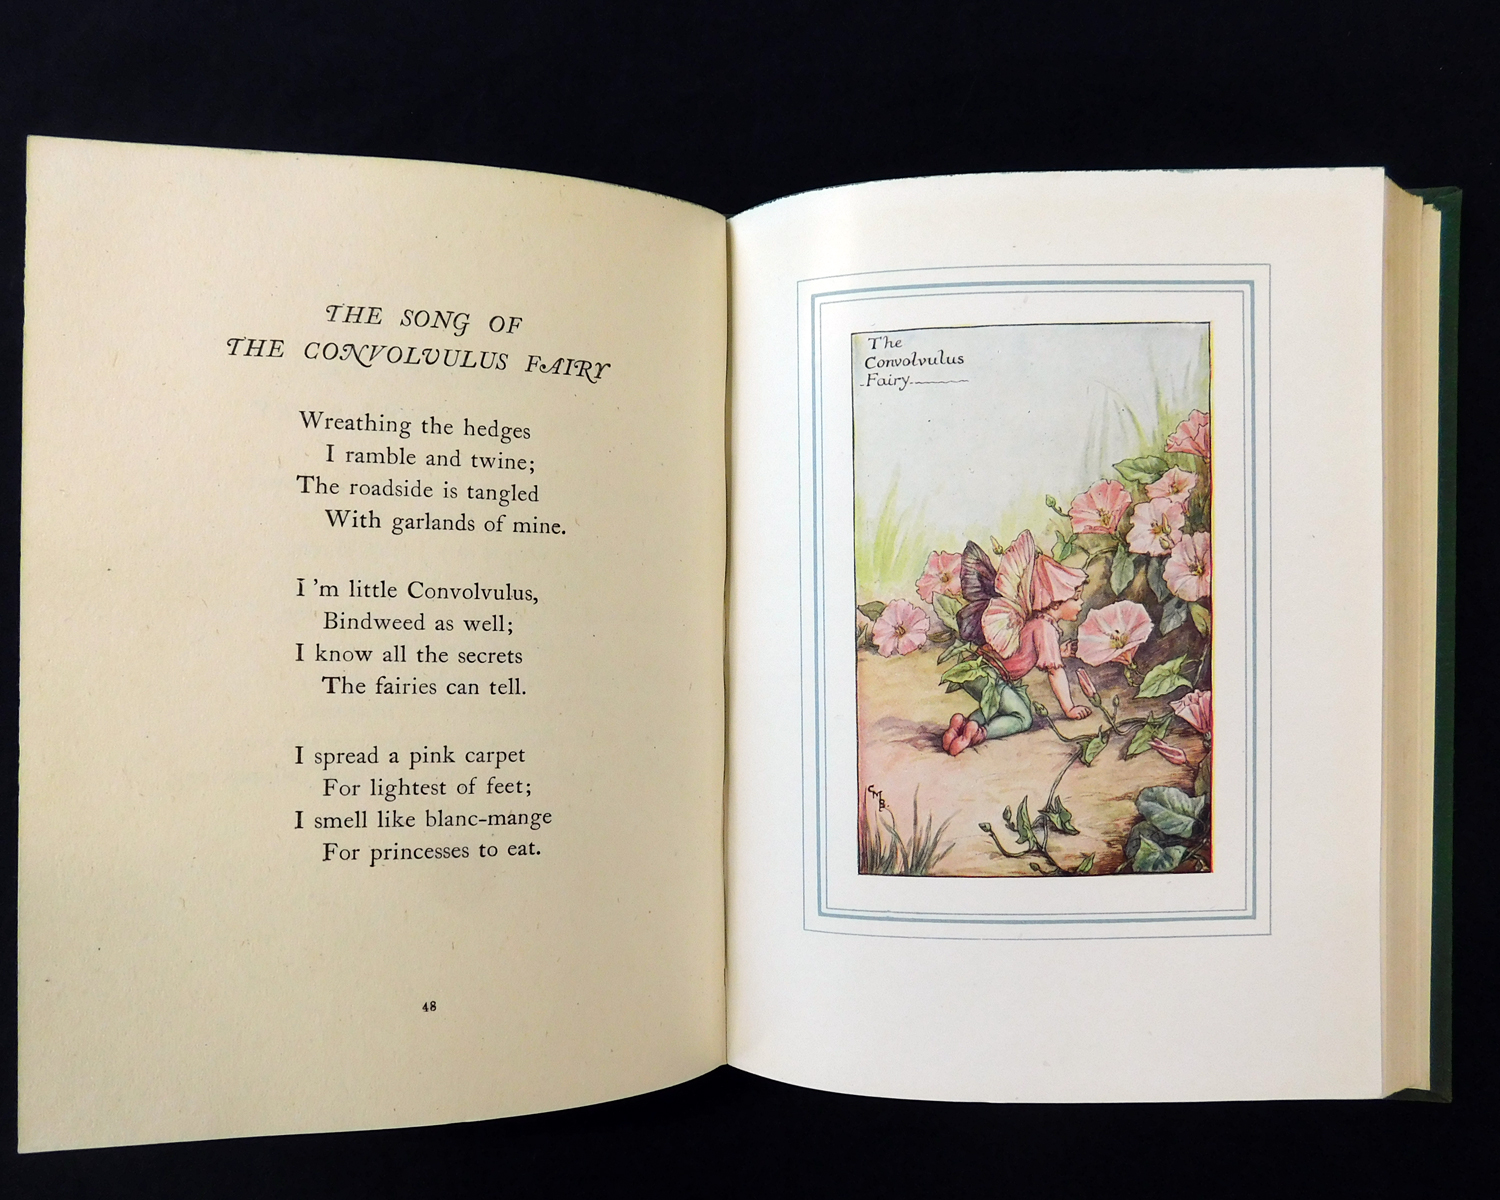 CICELY MARY BARKER: THE BOOK OF THE FLOWER FAIRIES, London and Glasgow, Blackie & Son Ltd, circa - Image 4 of 6